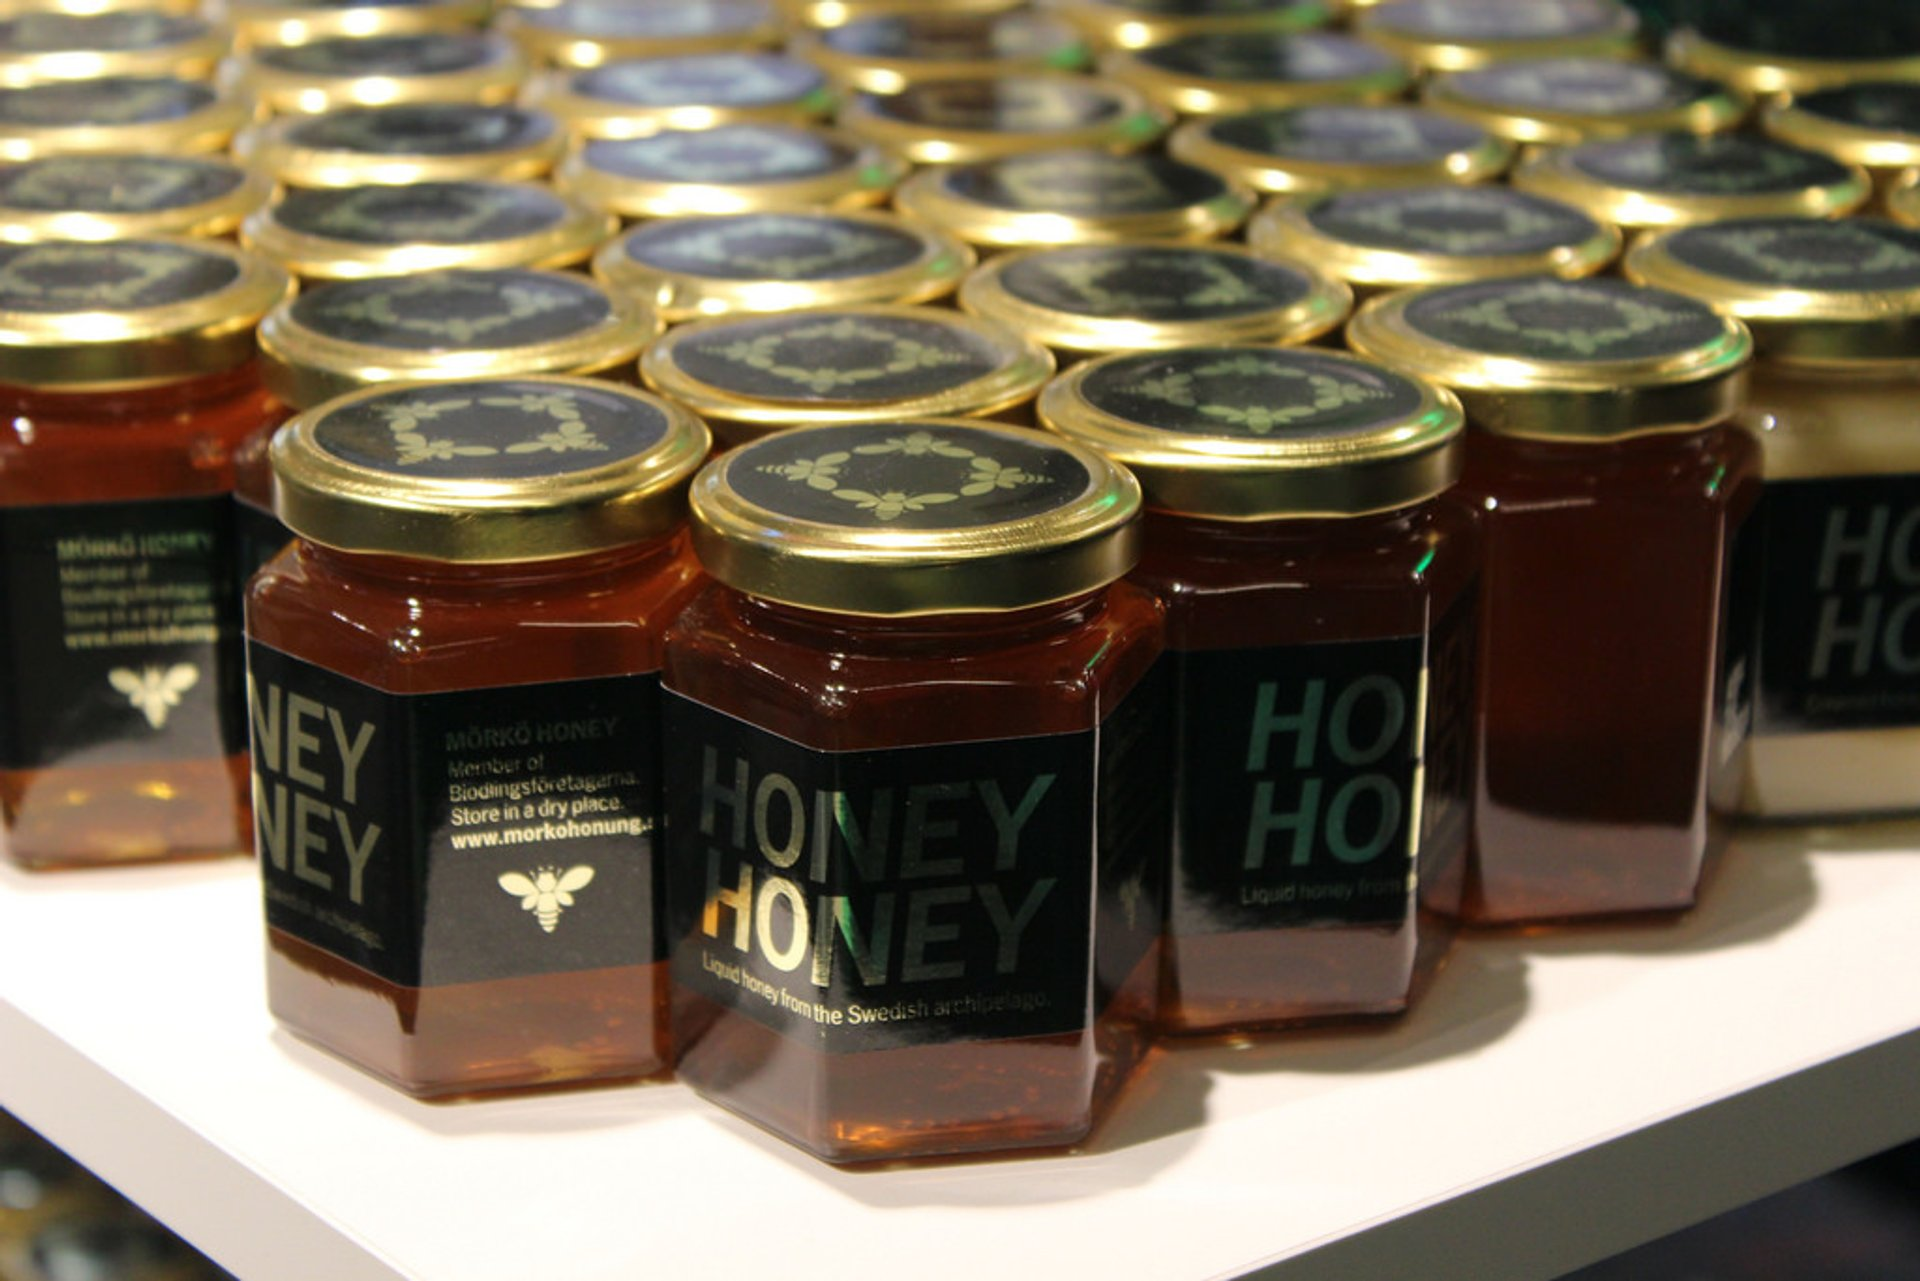 Best time for Honey in Sweden 2020